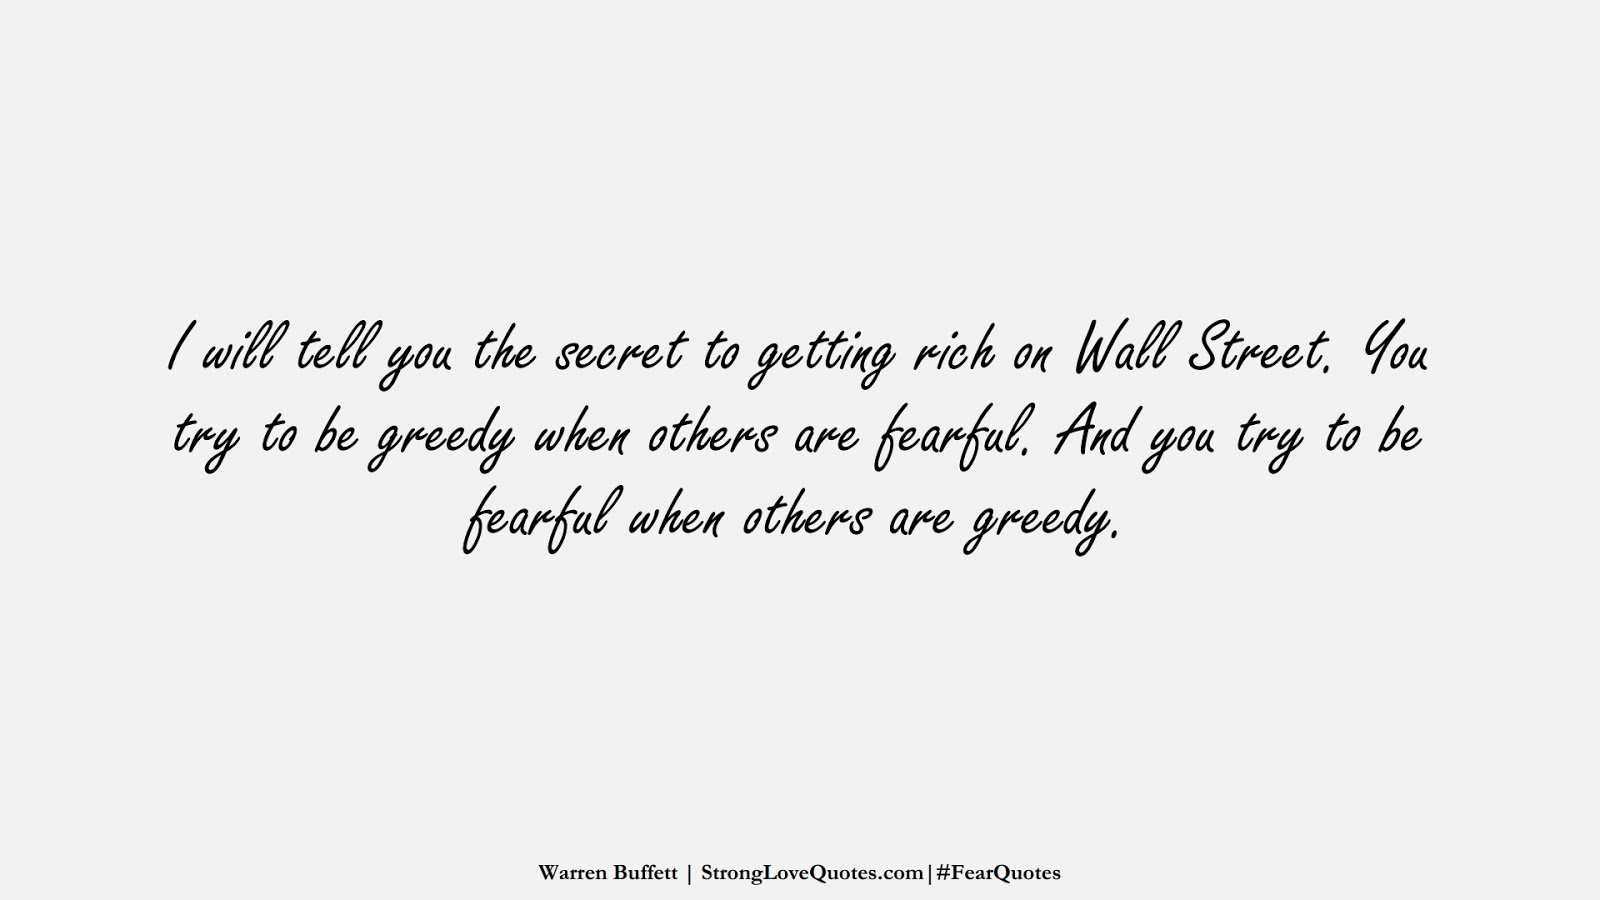 I will tell you the secret to getting rich on Wall Street. You try to be greedy when others are fearful. And you try to be fearful when others are greedy. (Warren Buffett);  #FearQuotes